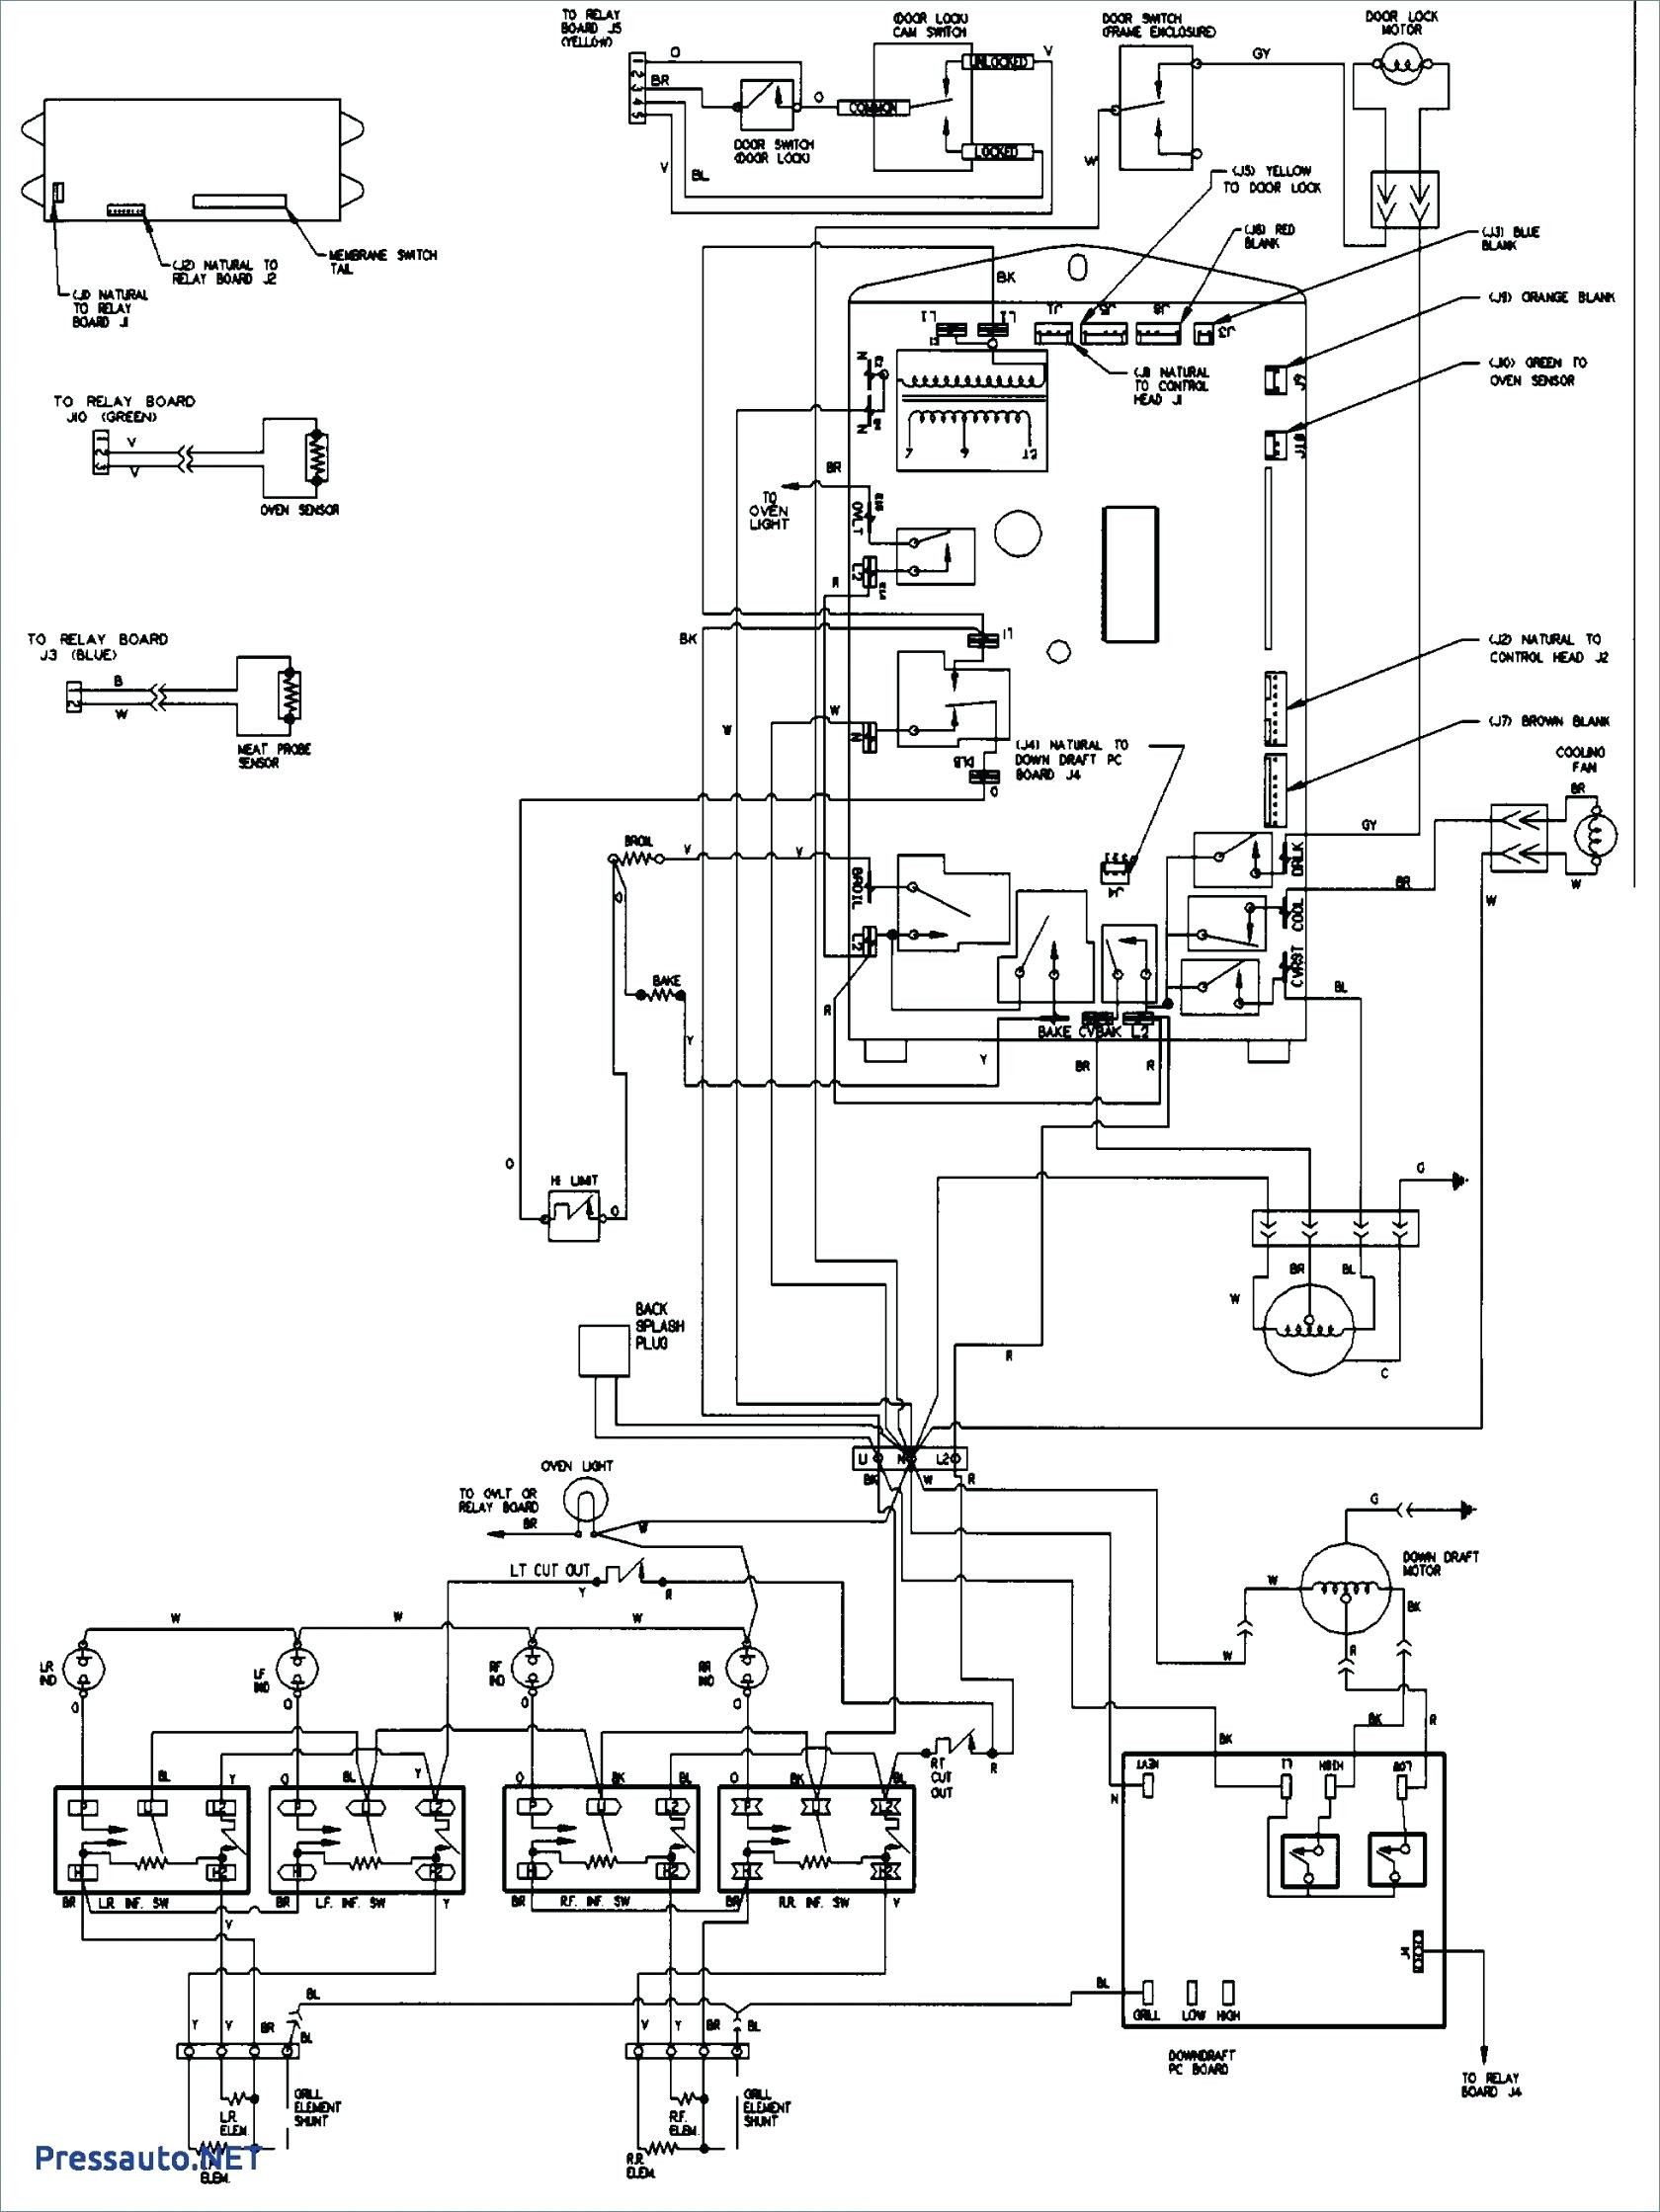 wiring diagram for ac and furnace